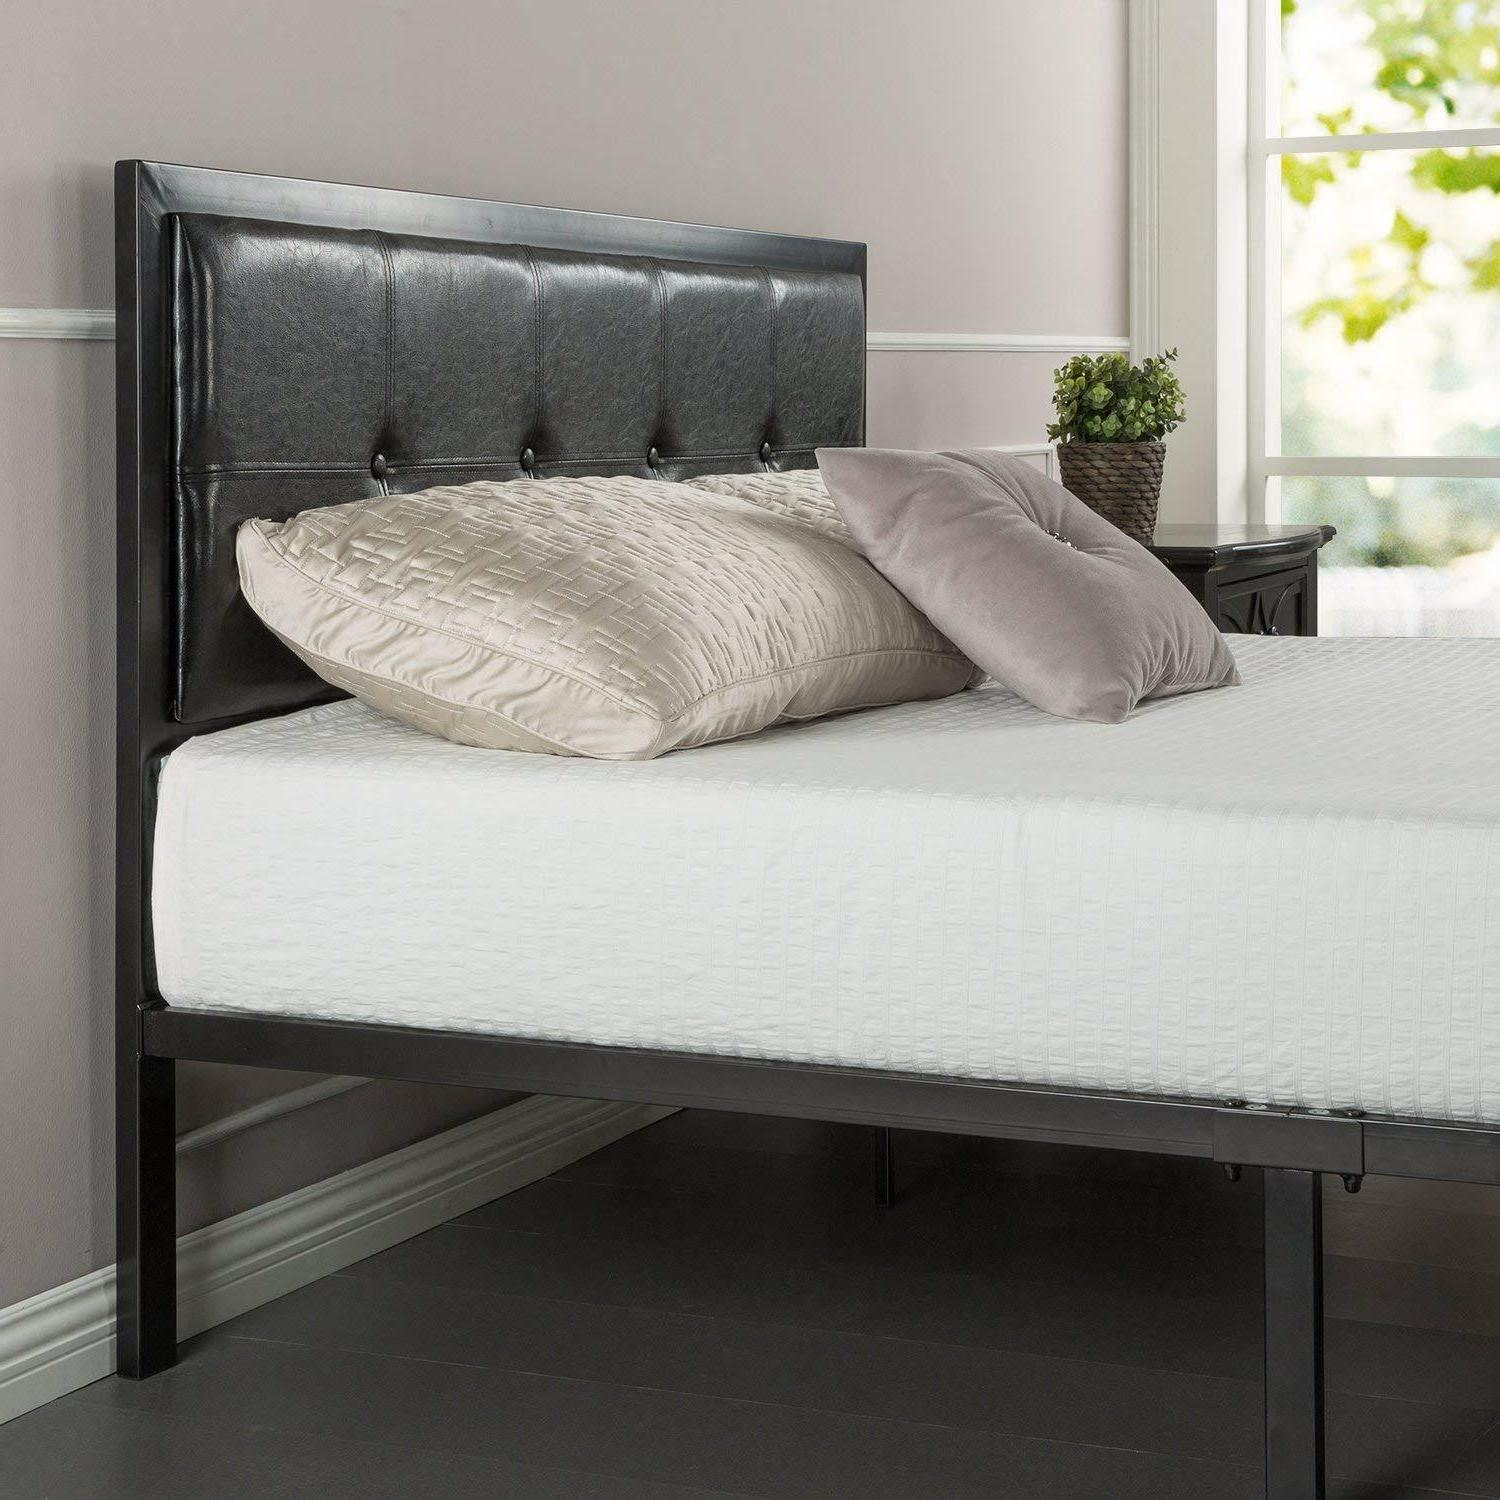 Platform Bed Frame with Steel Support